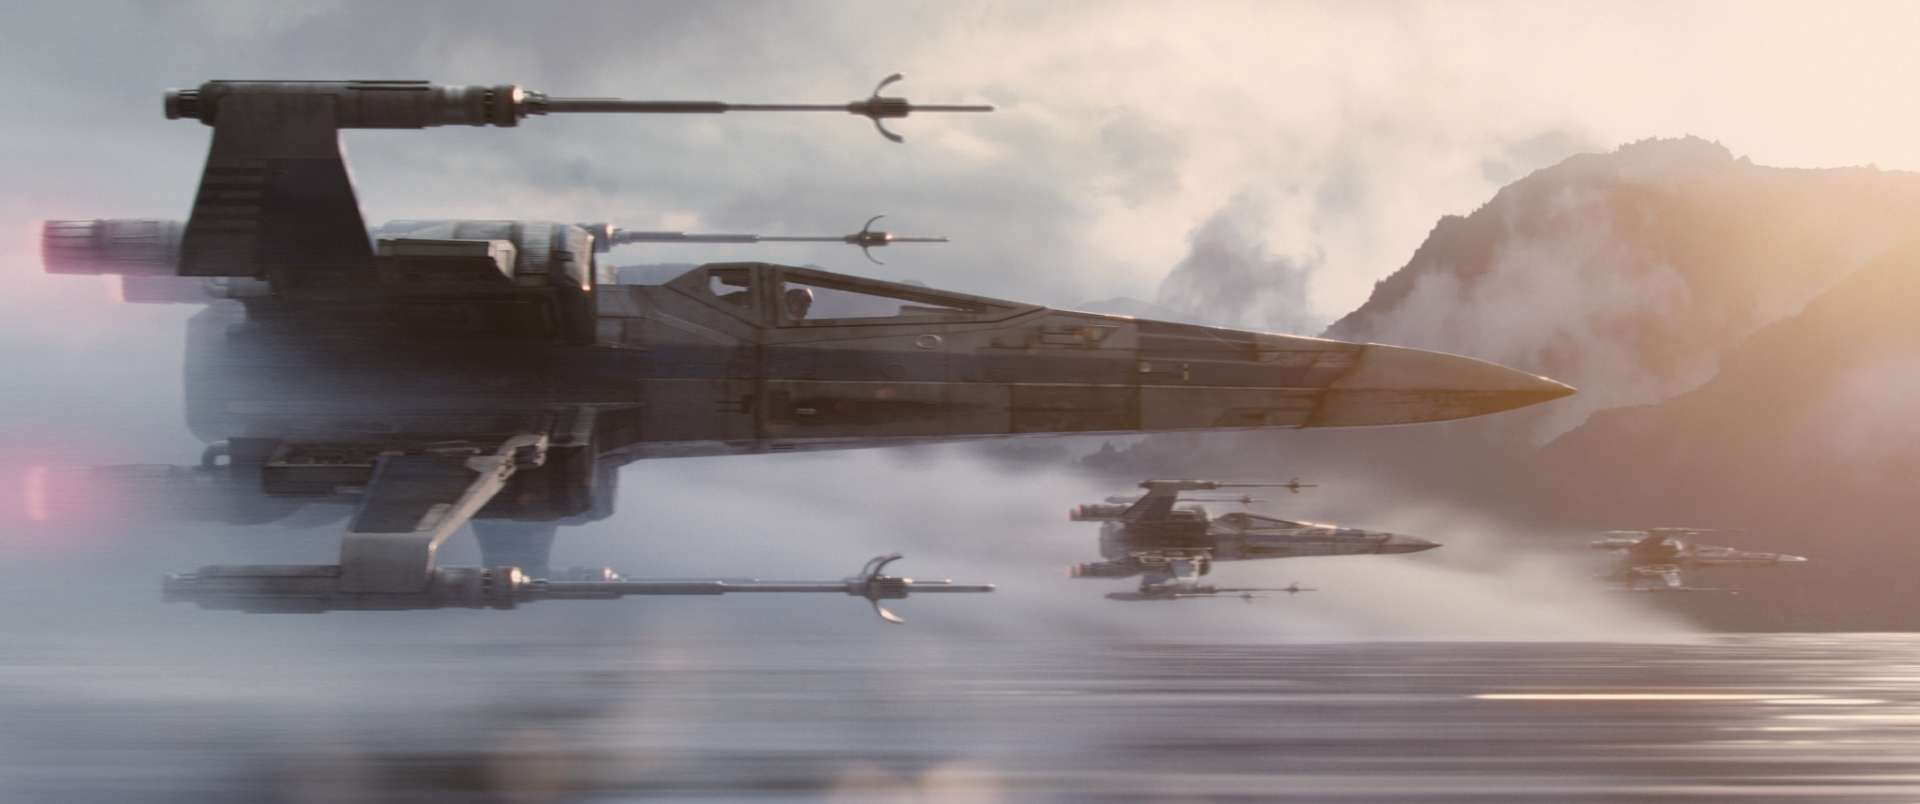 Star Wars Episode VII The Force Awakens Wallpaper 083